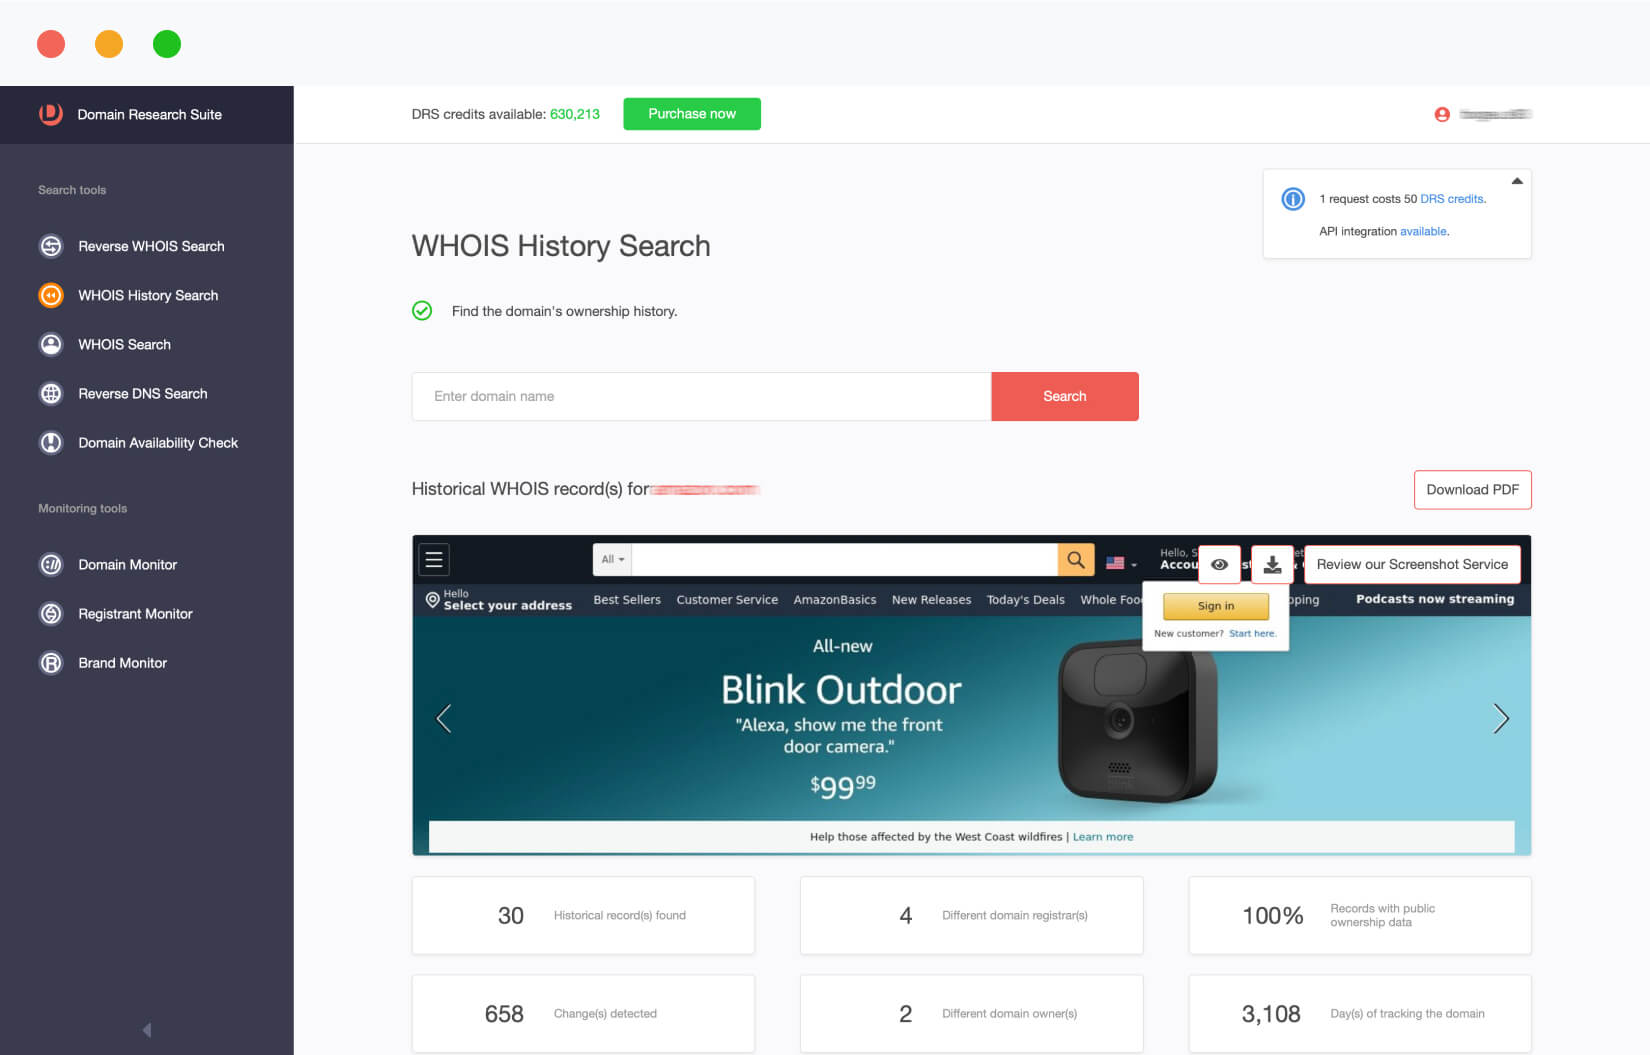 WHOIS History Search